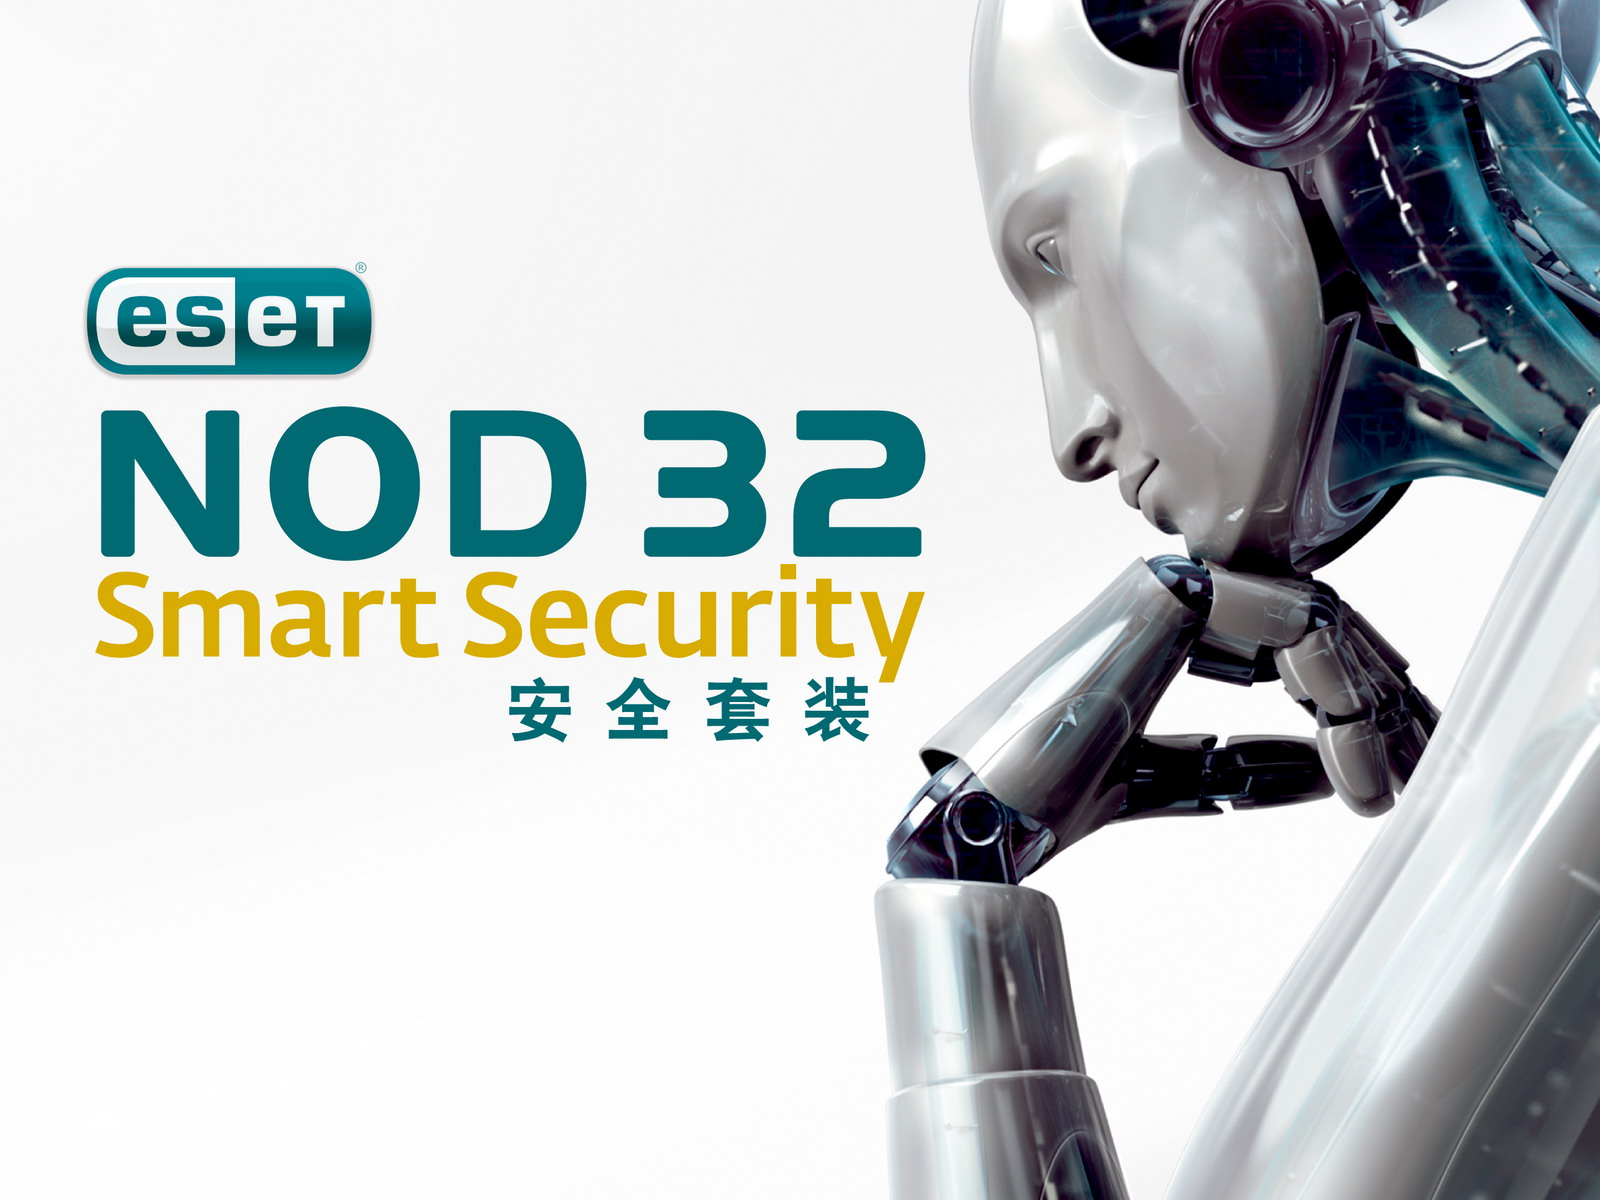 ESET Smart Security 15